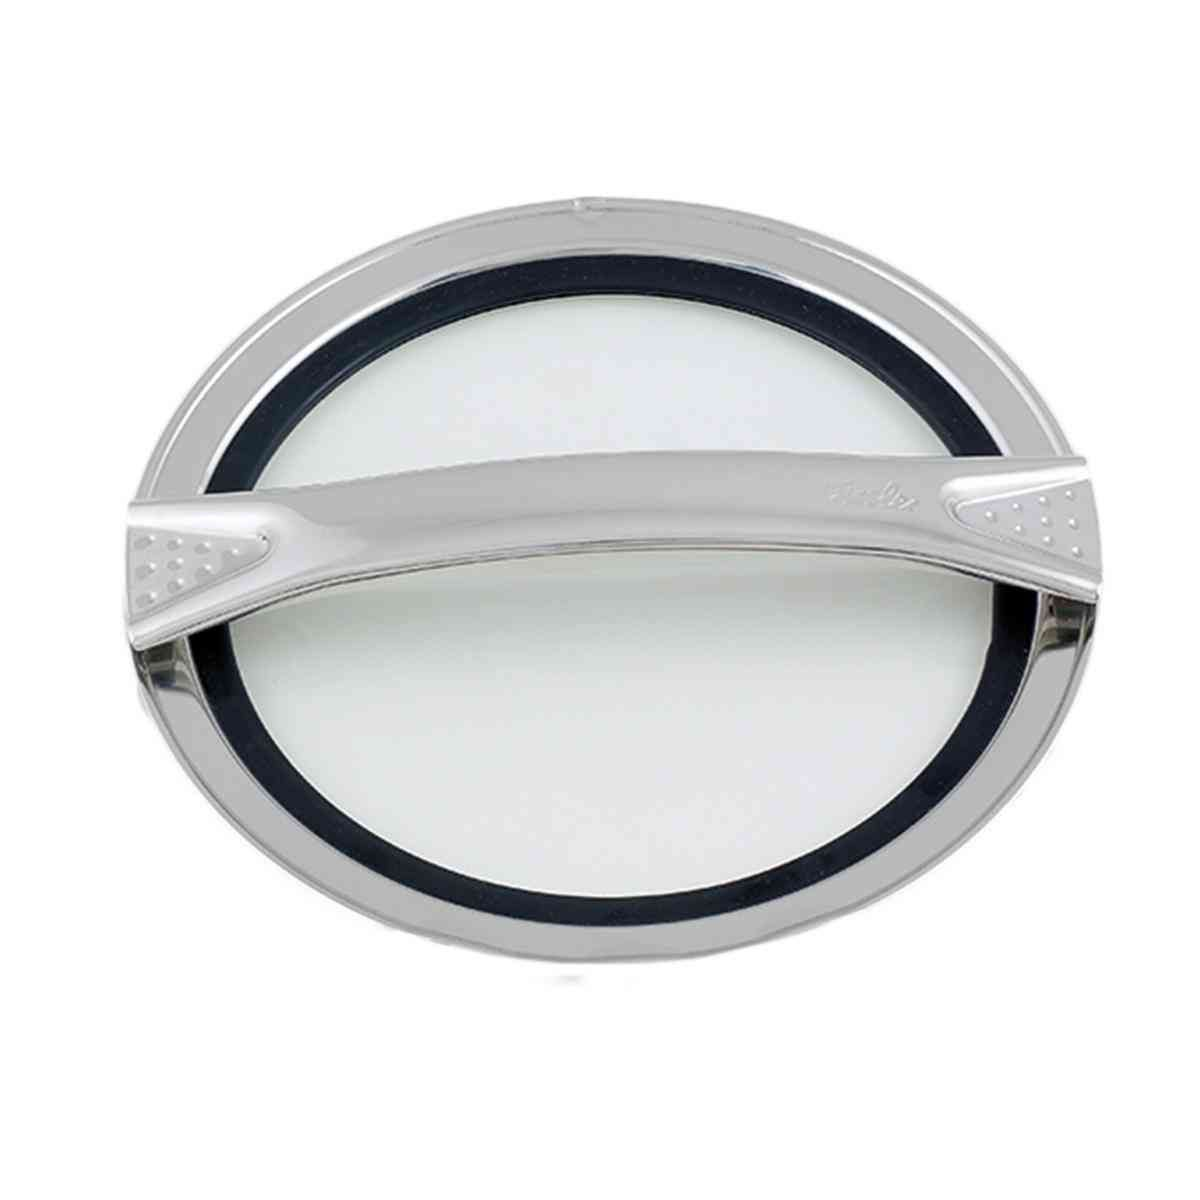 magic edition glass lid for pot with 16 cm